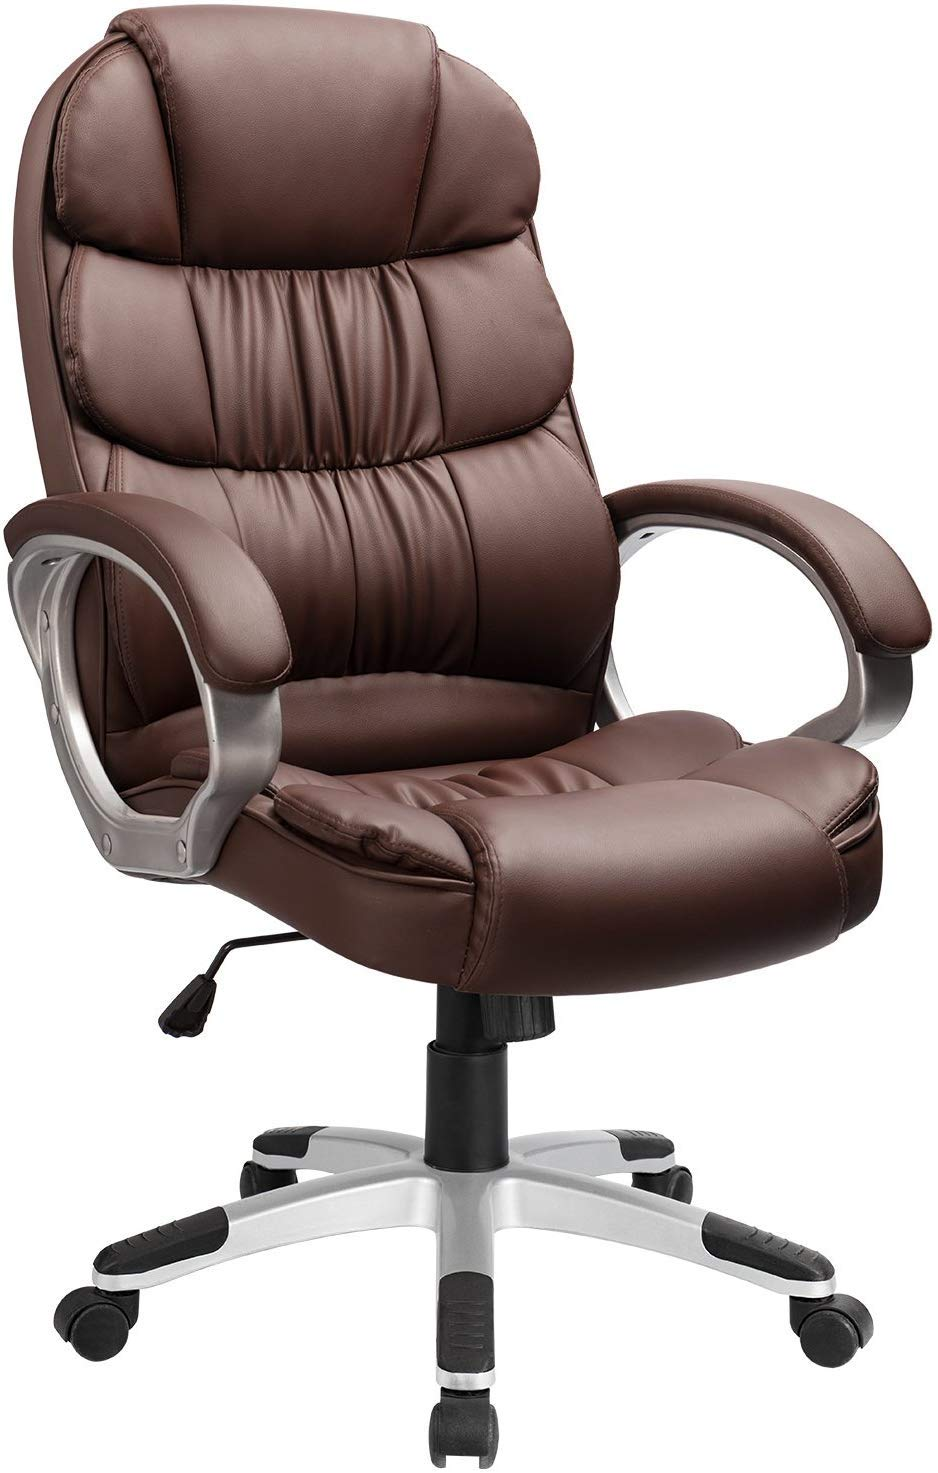 Furmax High Back Office Chair Adjustable Ergonomic Desk Chair with Padded Armrests,Executive PU Leather Swivel Task Chair with Lumbar Support (Brown)